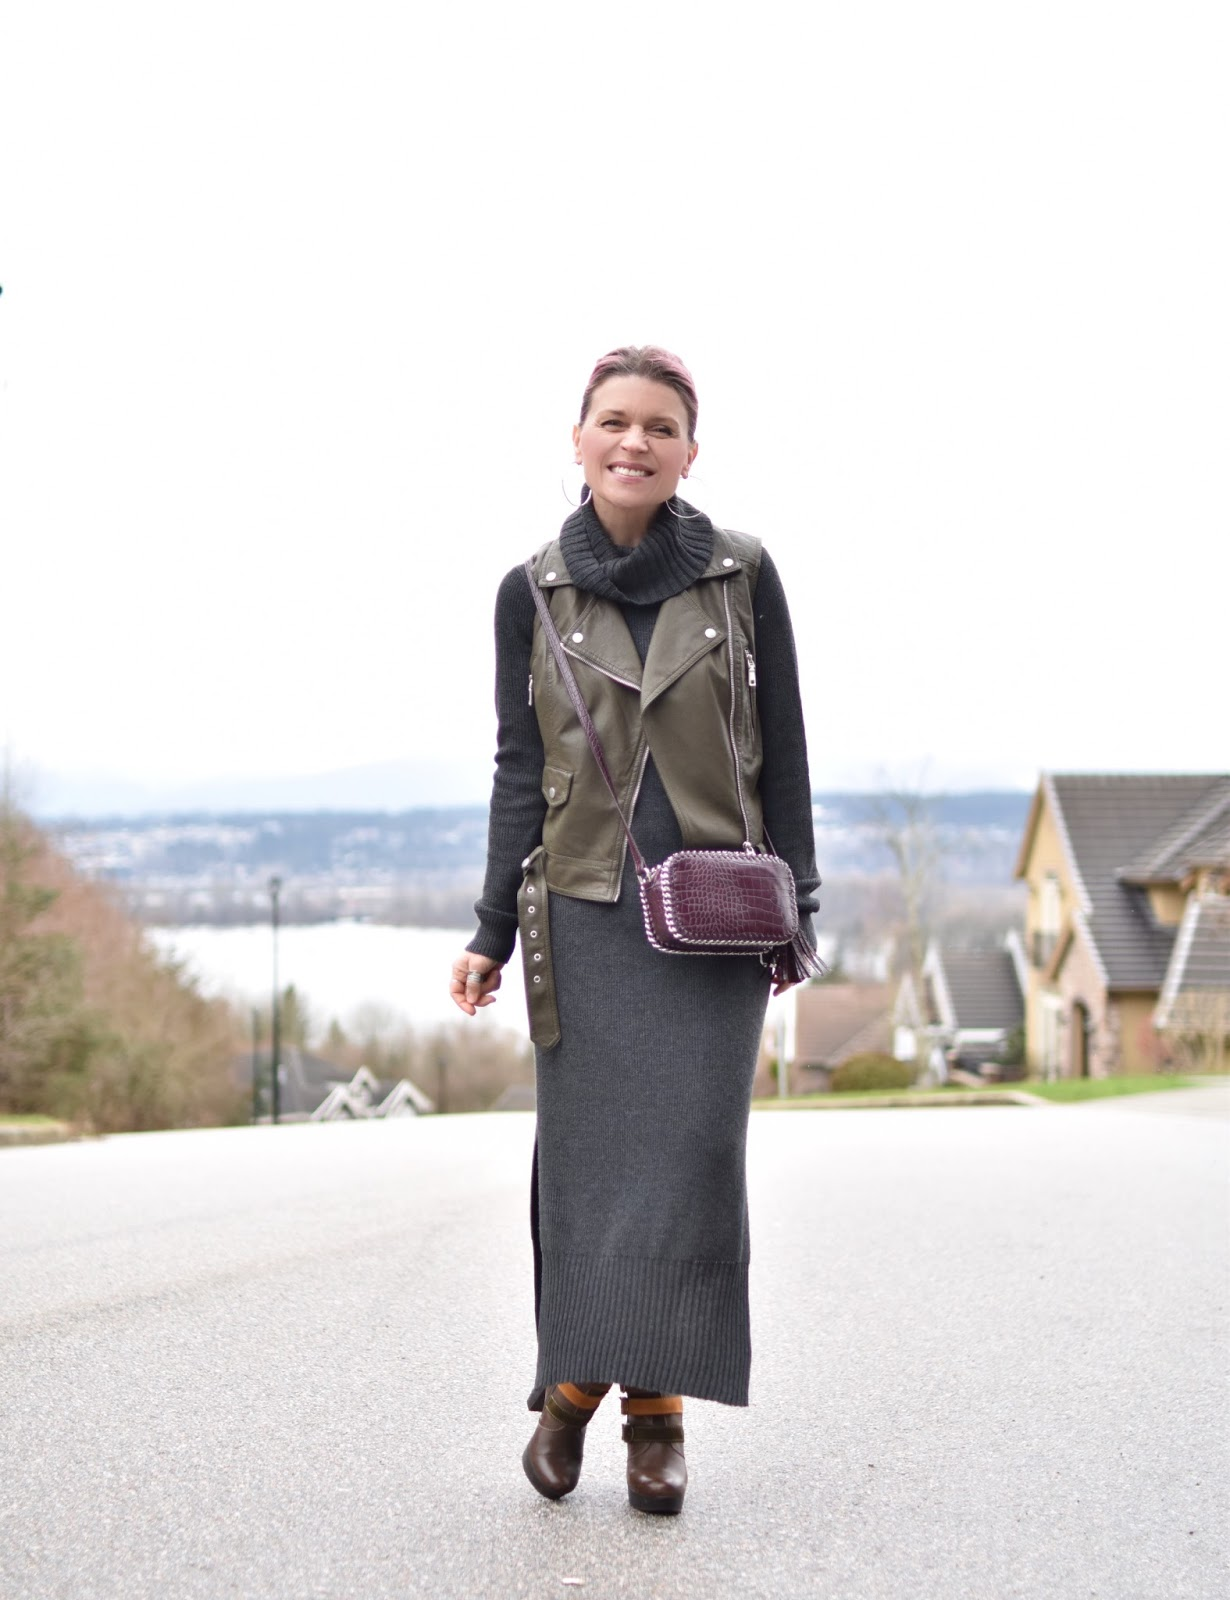 Monika Faulkner outfit inspiration - styling a turtleneck sweater dress with a moto vest and platform booties